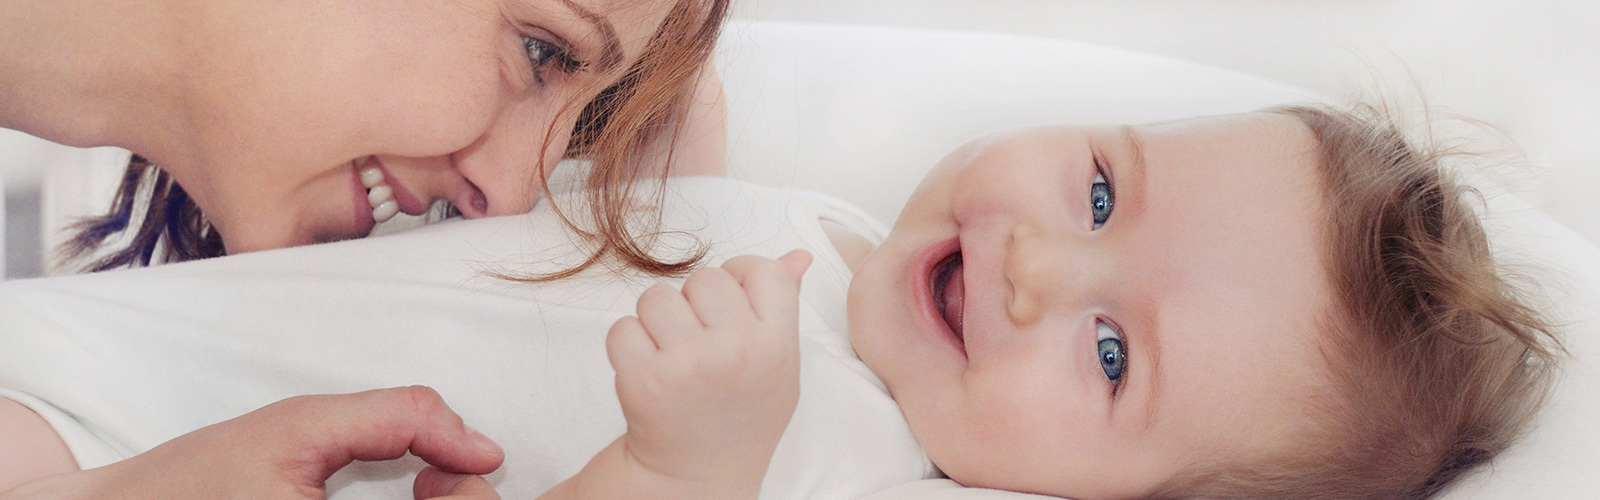 Woman sniffing belly of laughing baby.